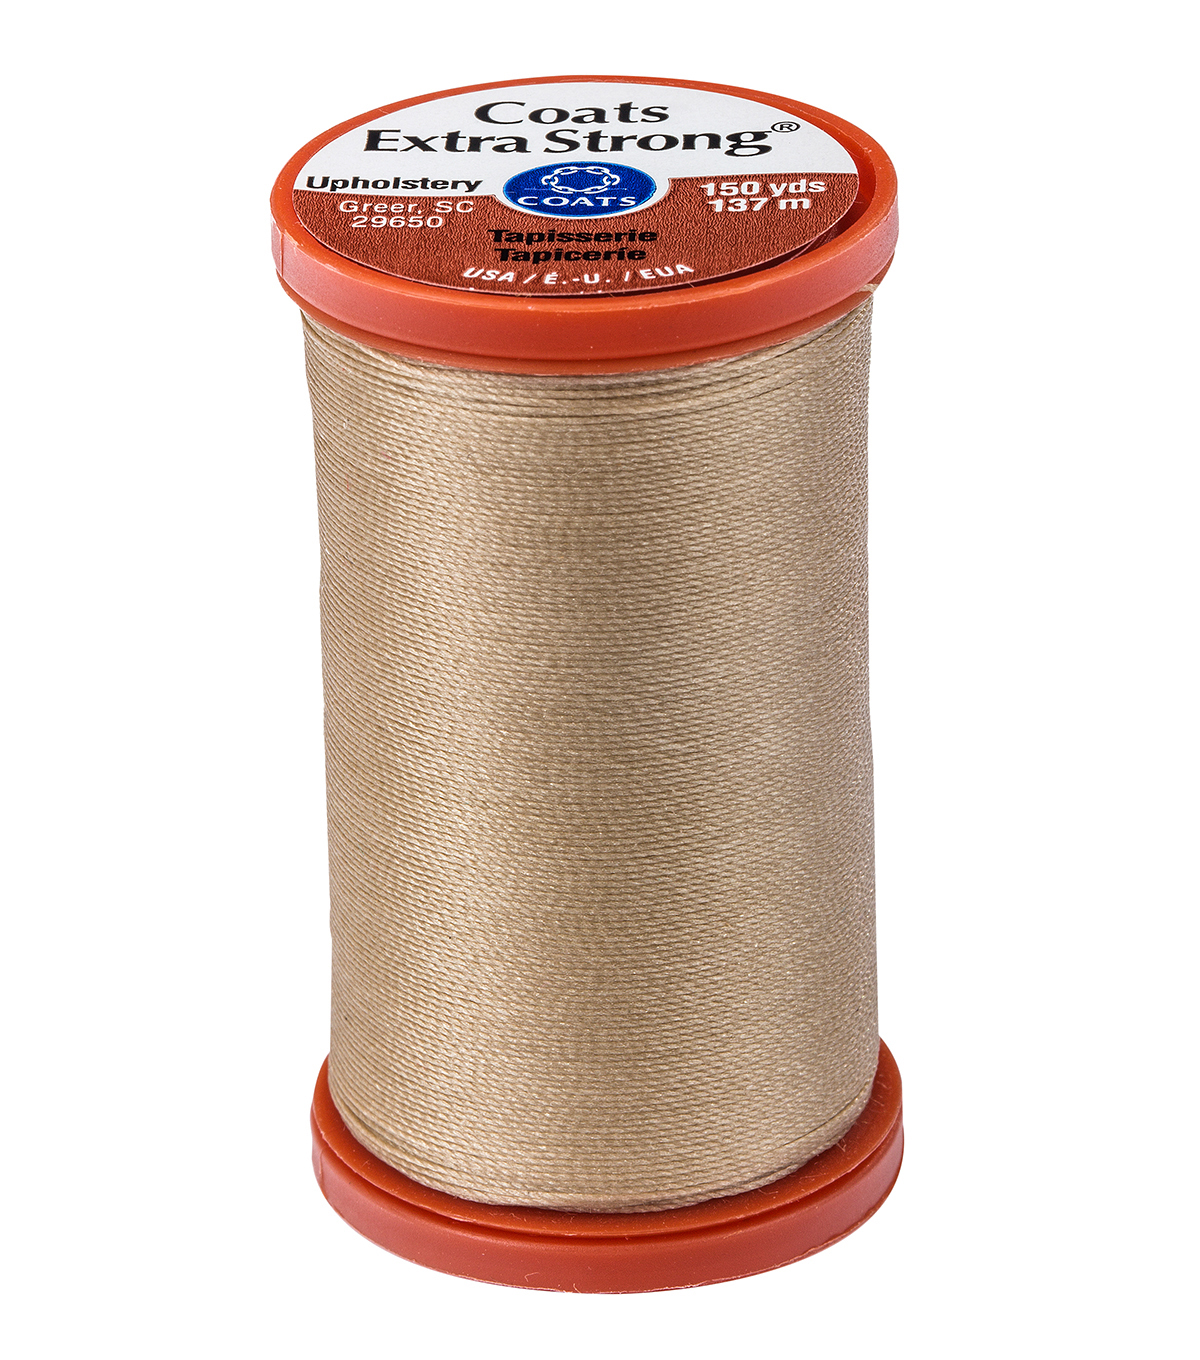 Coats & Clark Extra Strong & Upholstery Thread 150 yd , Buff